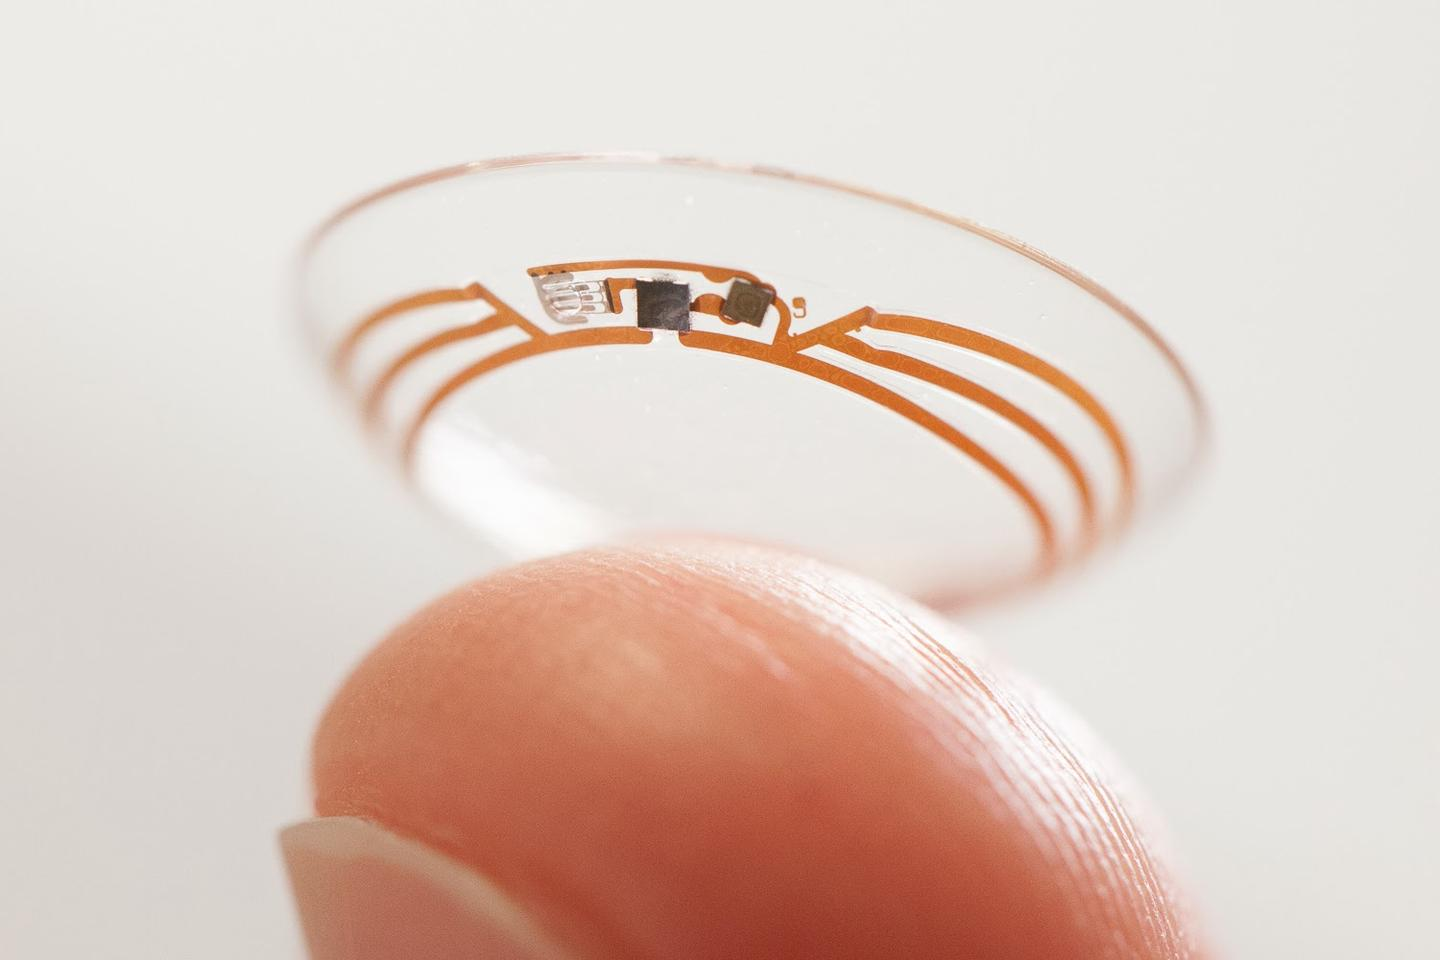 One day, contact lenses could do much more than just correct our vision